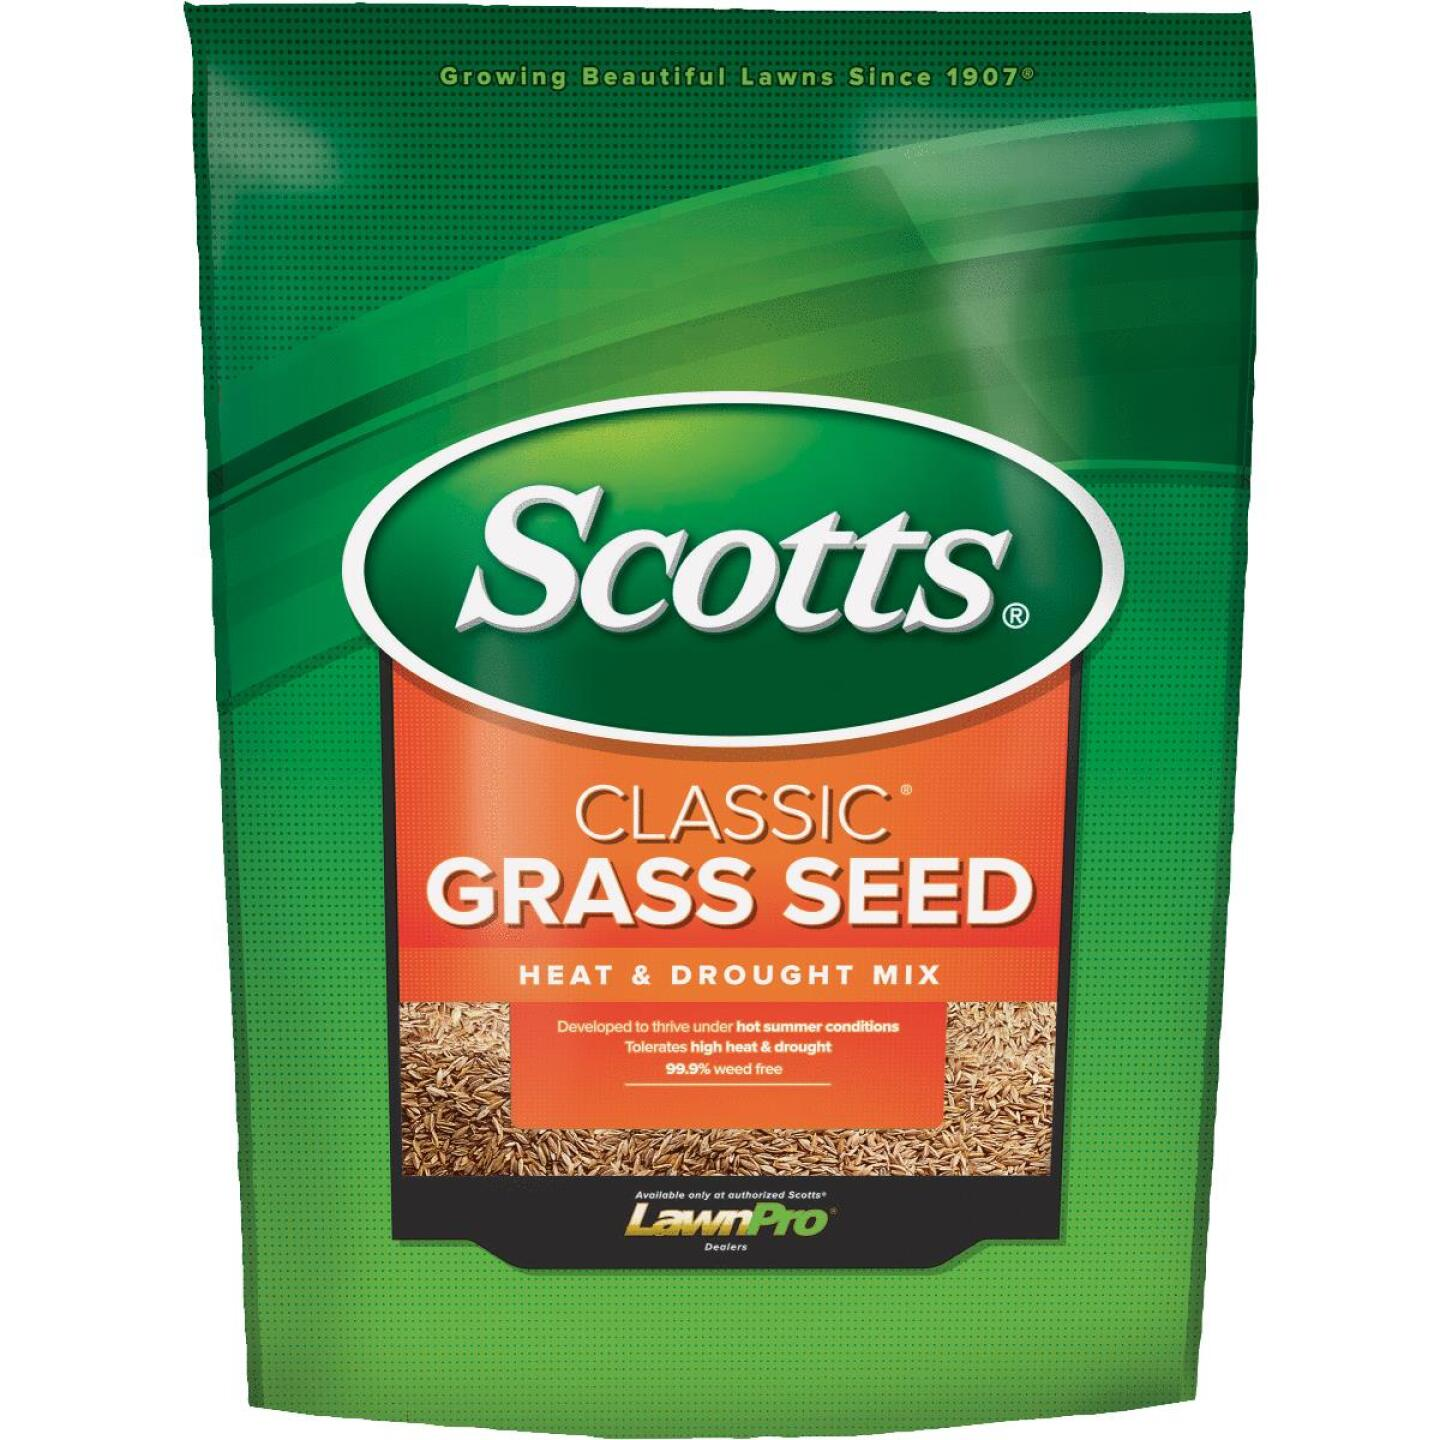 Scotts Classic 7 Lb. 1750 Sq. Ft. Coverage Heat & Drought Grass Seed Image 1